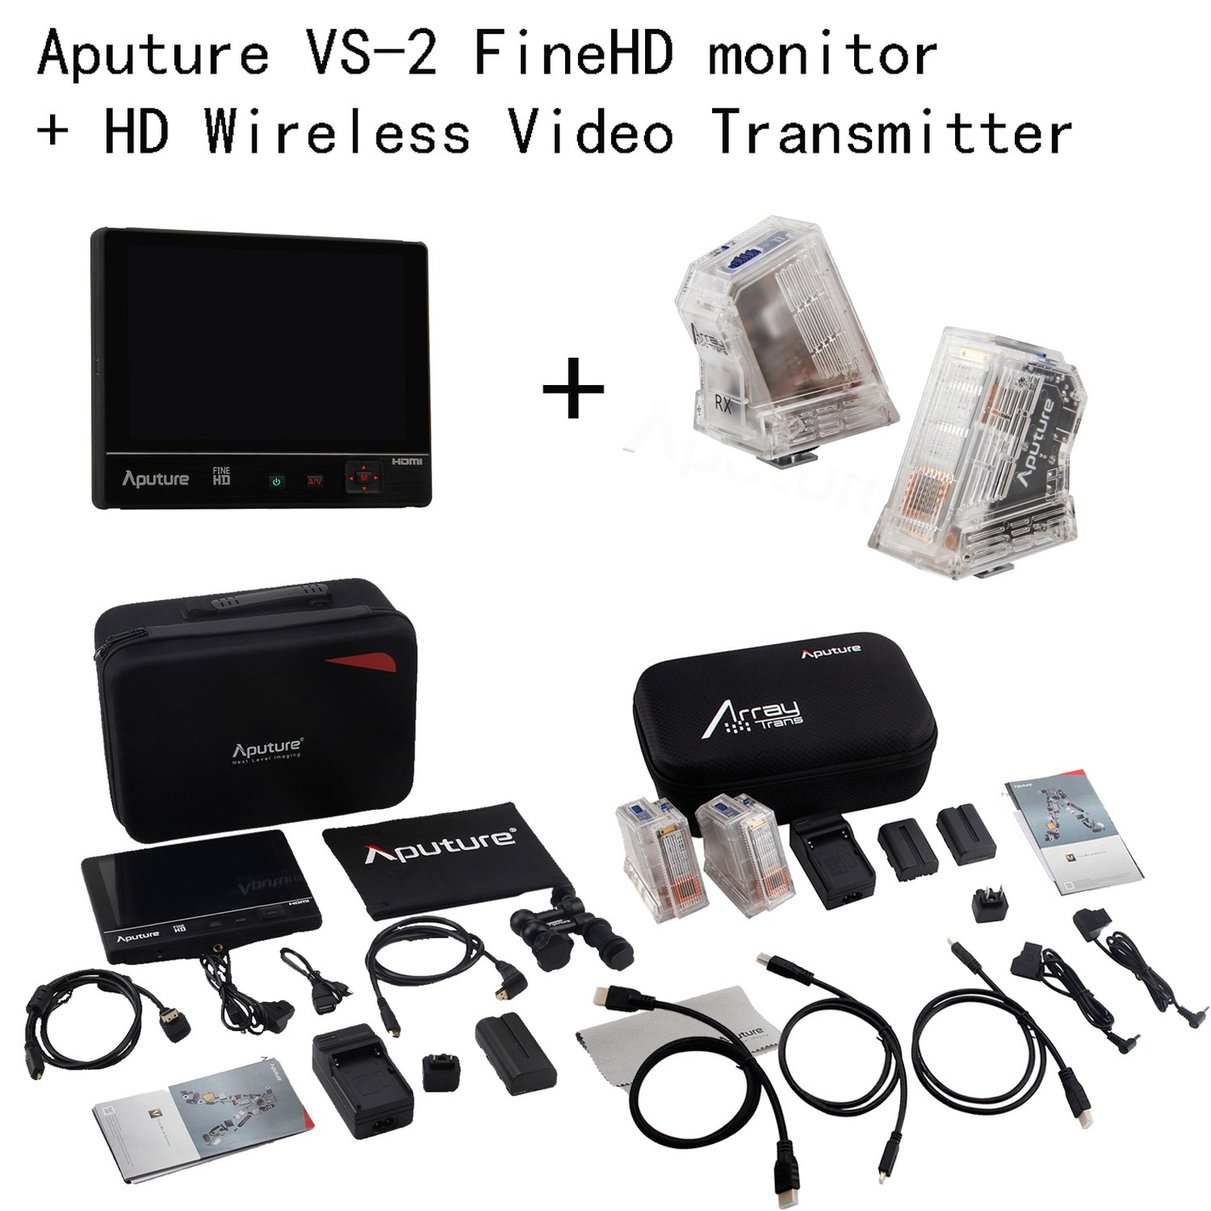 Aputure VS-2 FineHD 7 LCD Field Monitor kit + Array Trans Wireless Video Transmitter kit aputure vs 5 7 inch sdi hdmi camera field monitor with rgb waveform vectorscope histogram zebra false color to better monitor